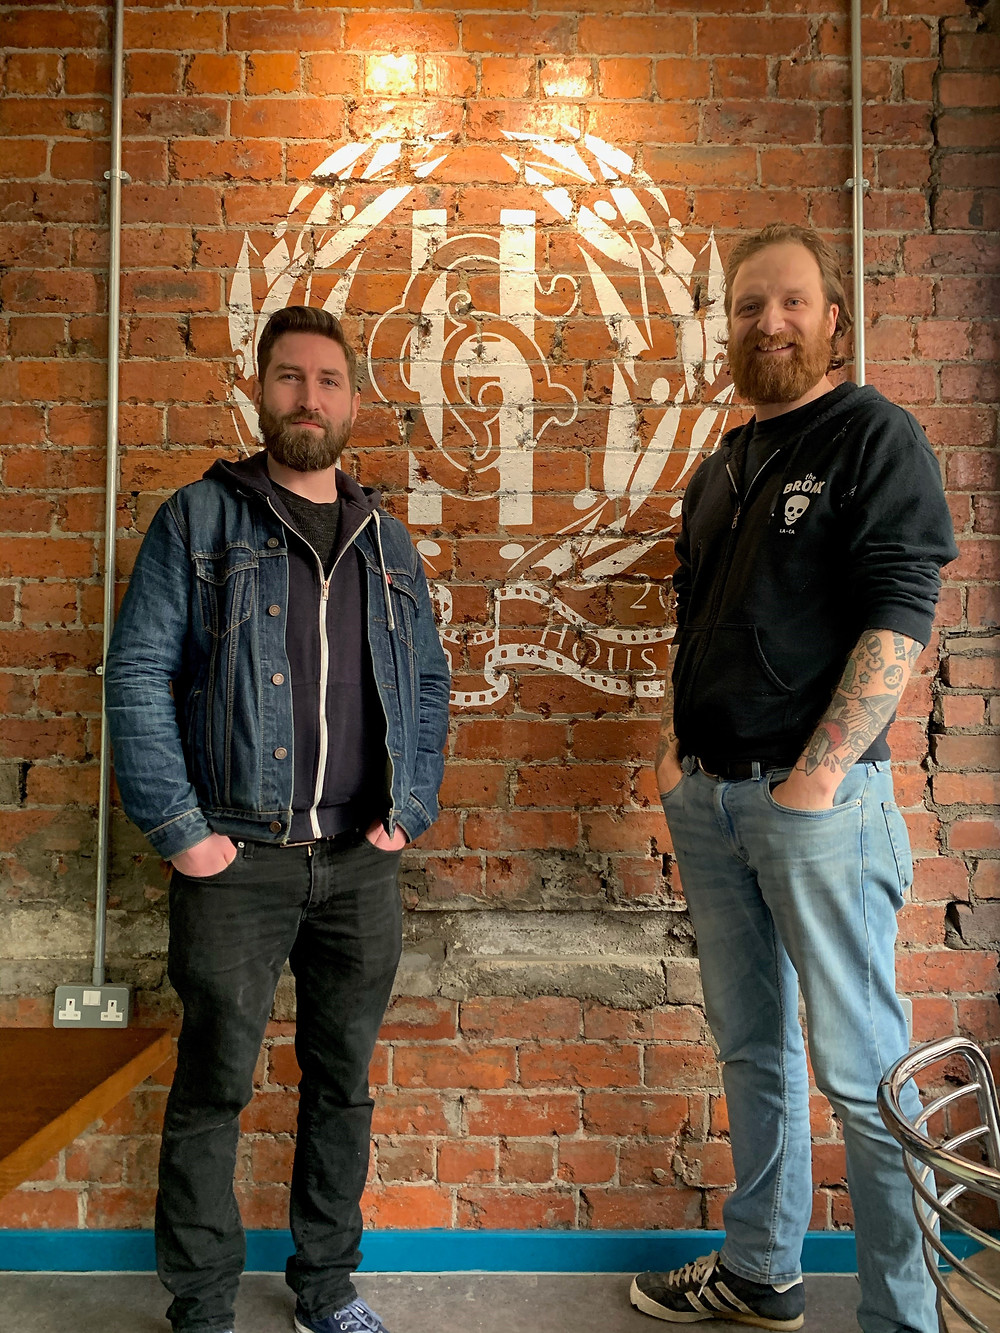 Owners of Grindhouse Bar, Leeds